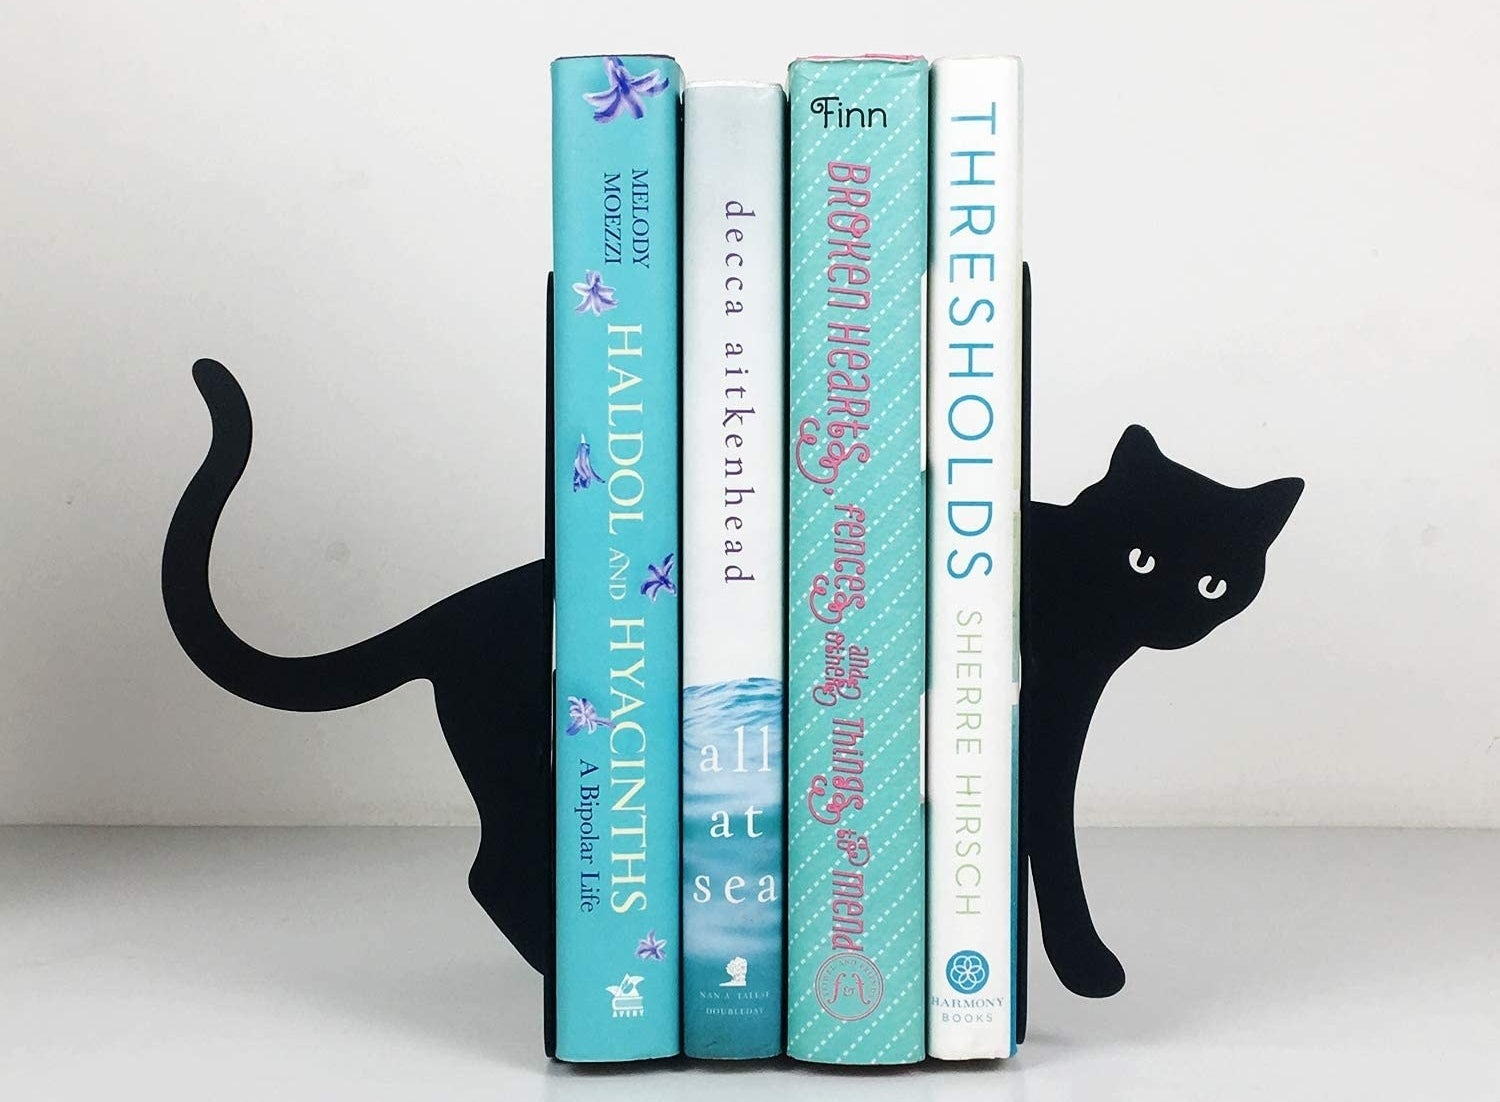 black cat book ends with books held between